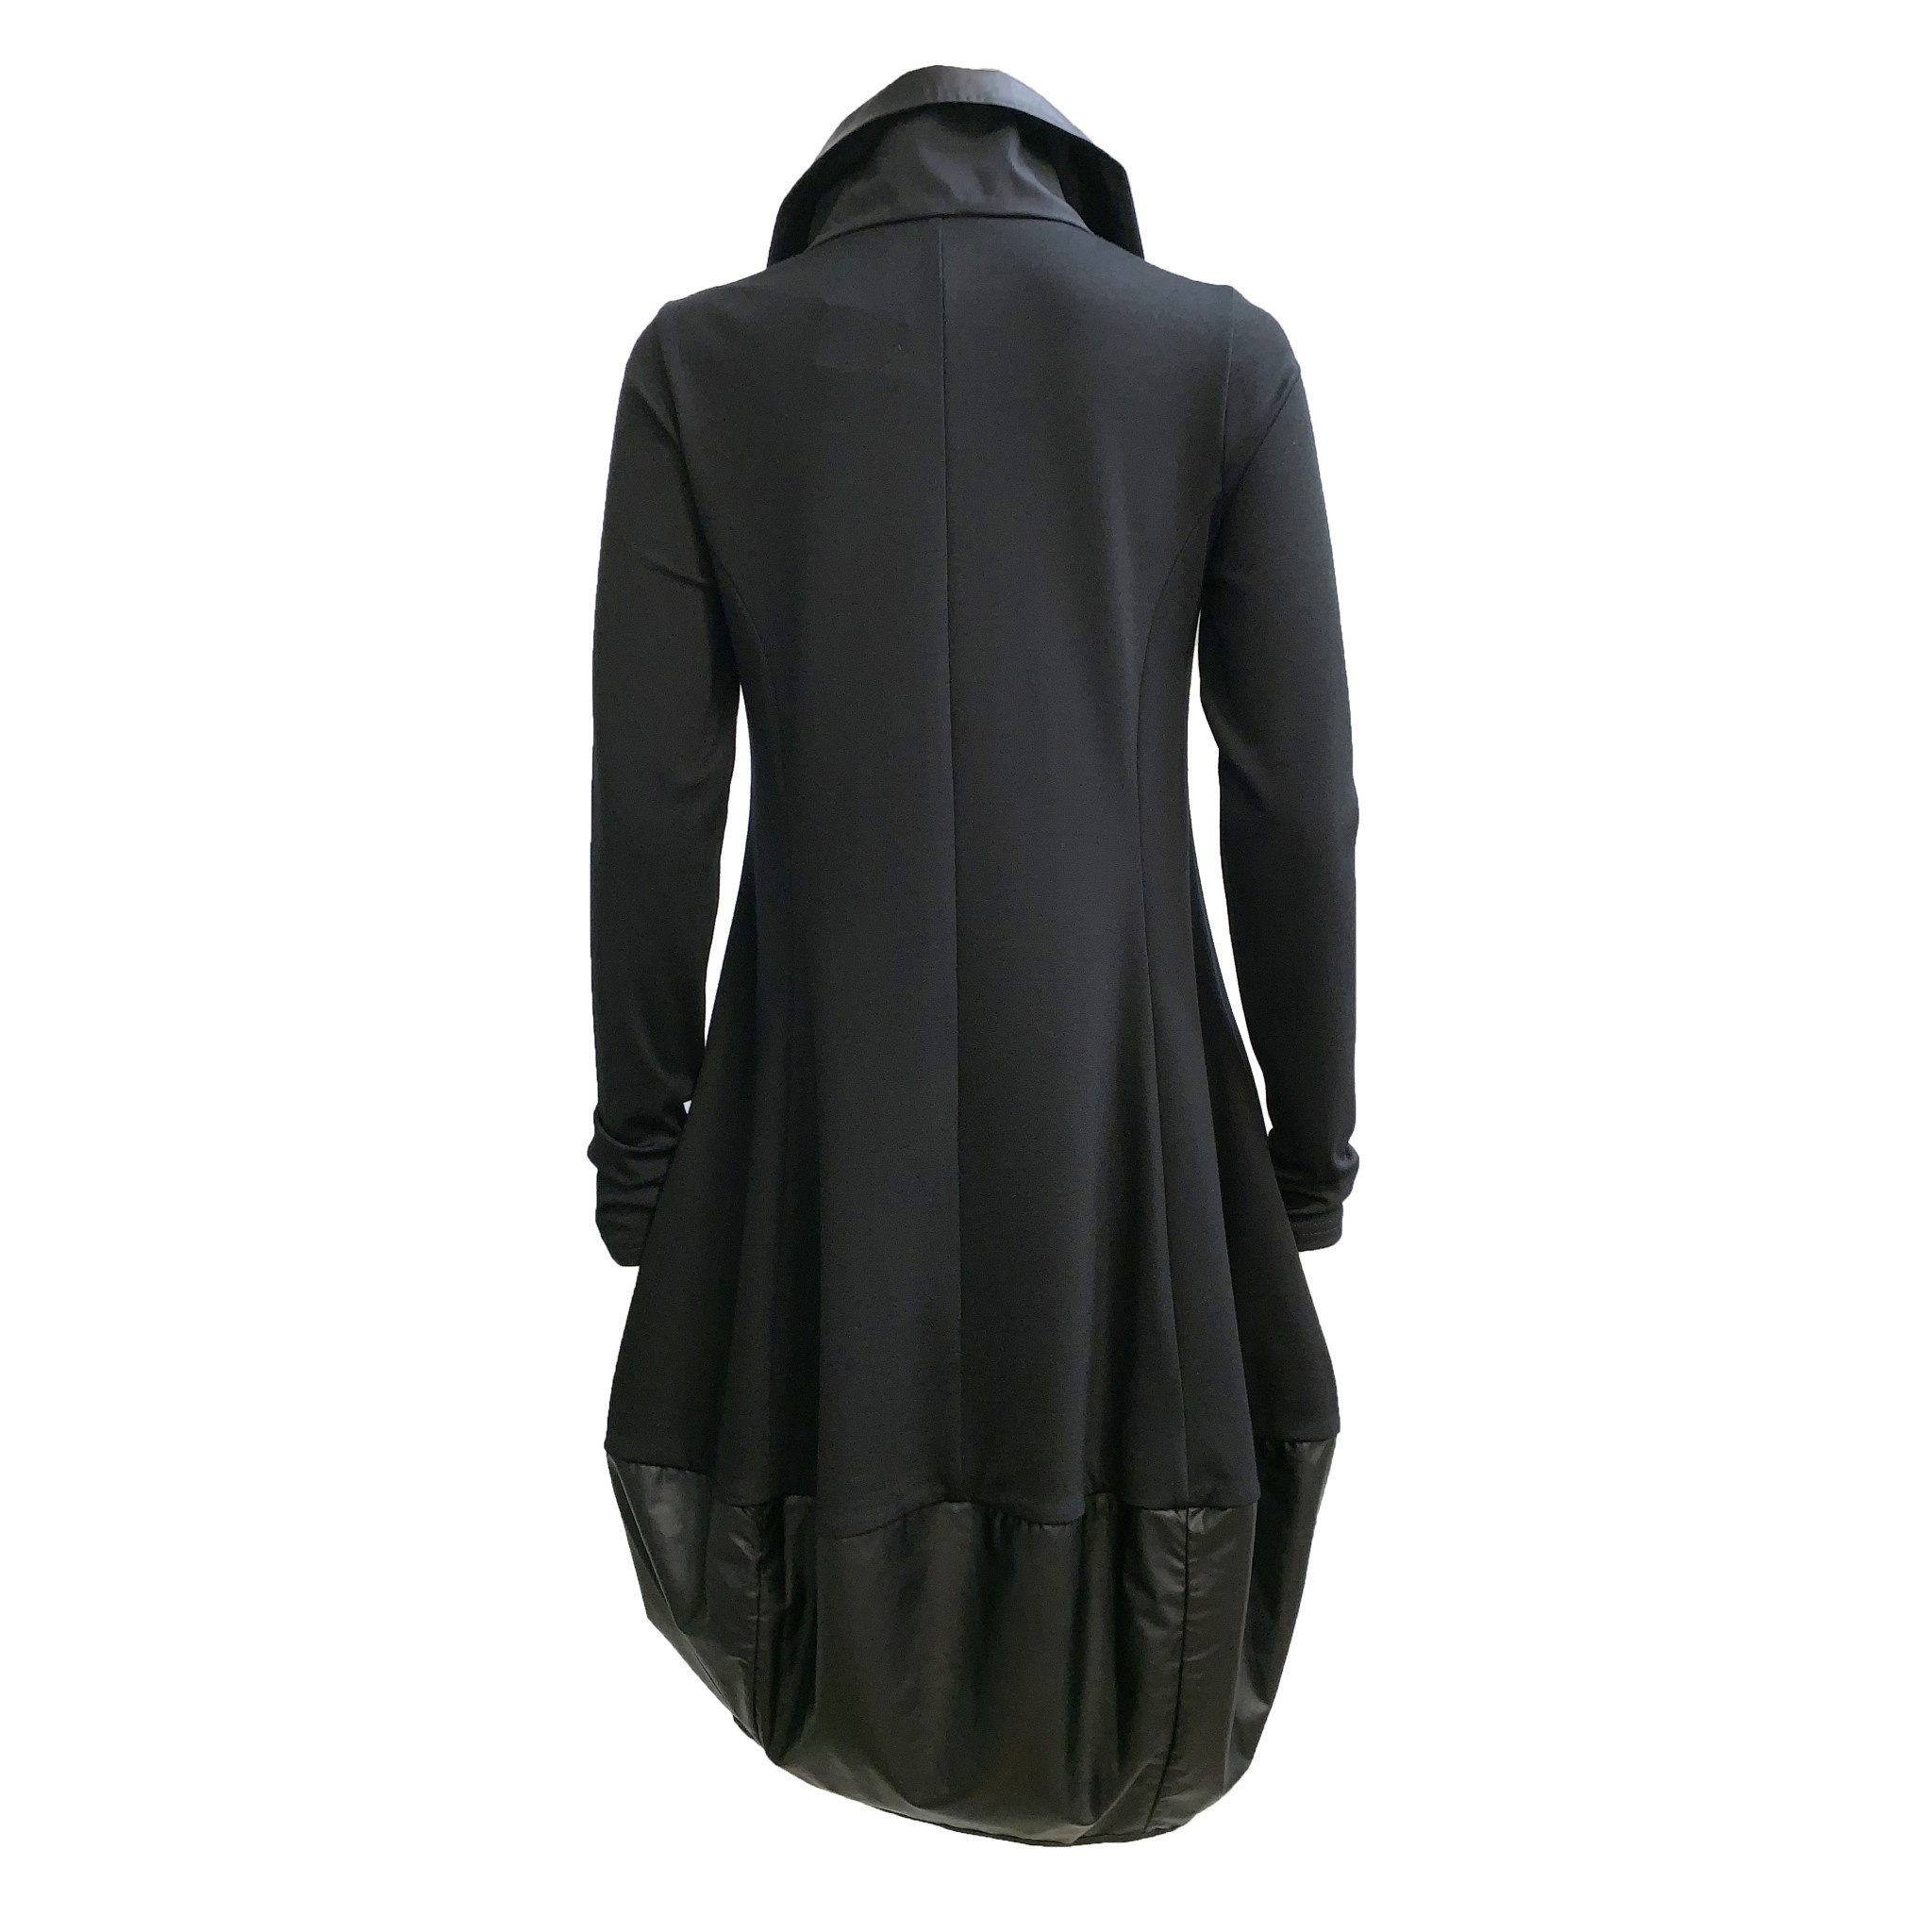 NY77 Design NY77 Design Zip Collar Tunic - Black